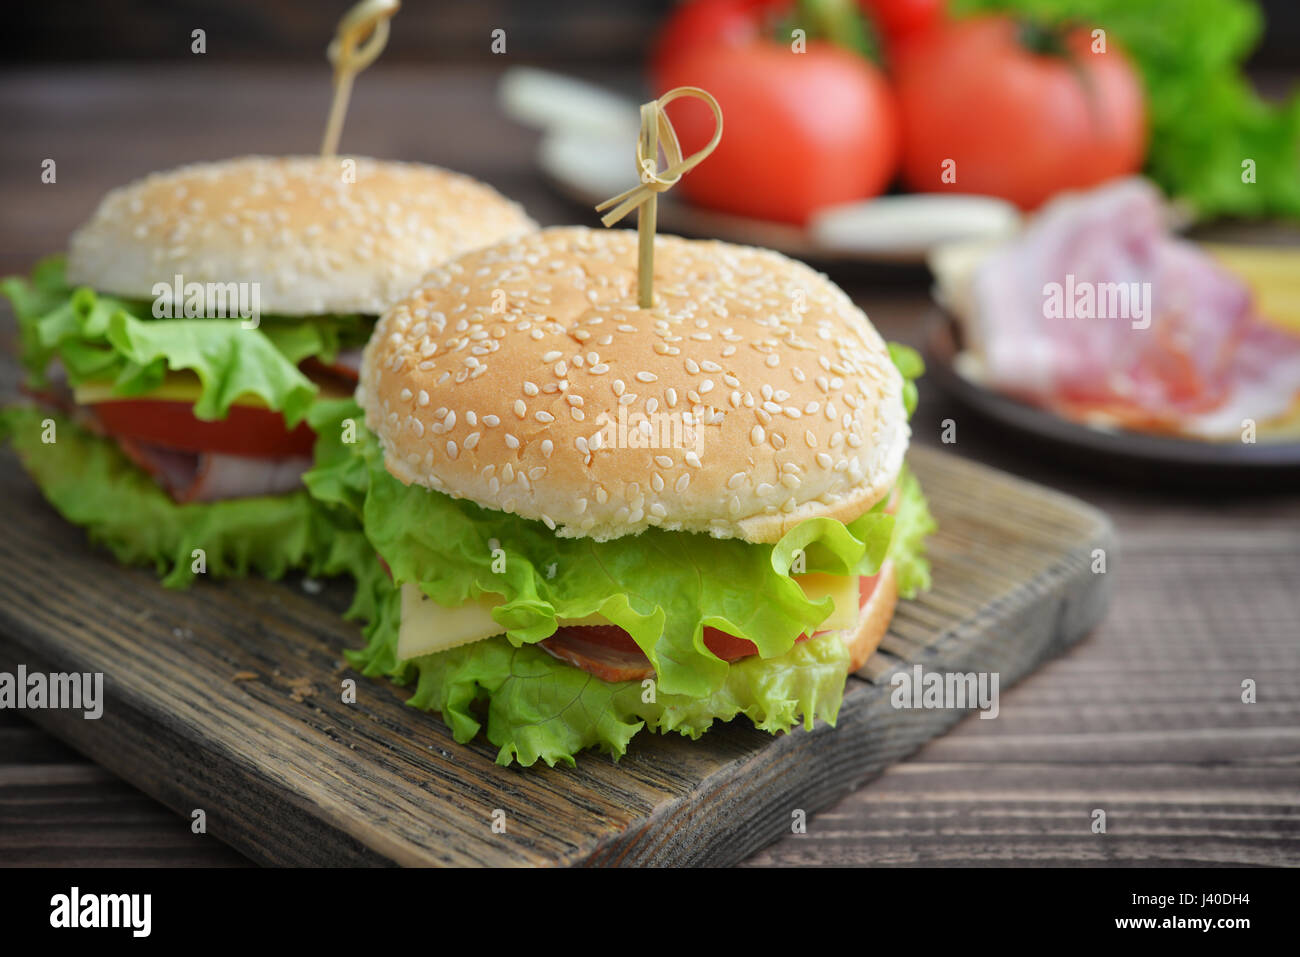 Burger with bacon, tomato and cheese on wooden table close up - Stock Image